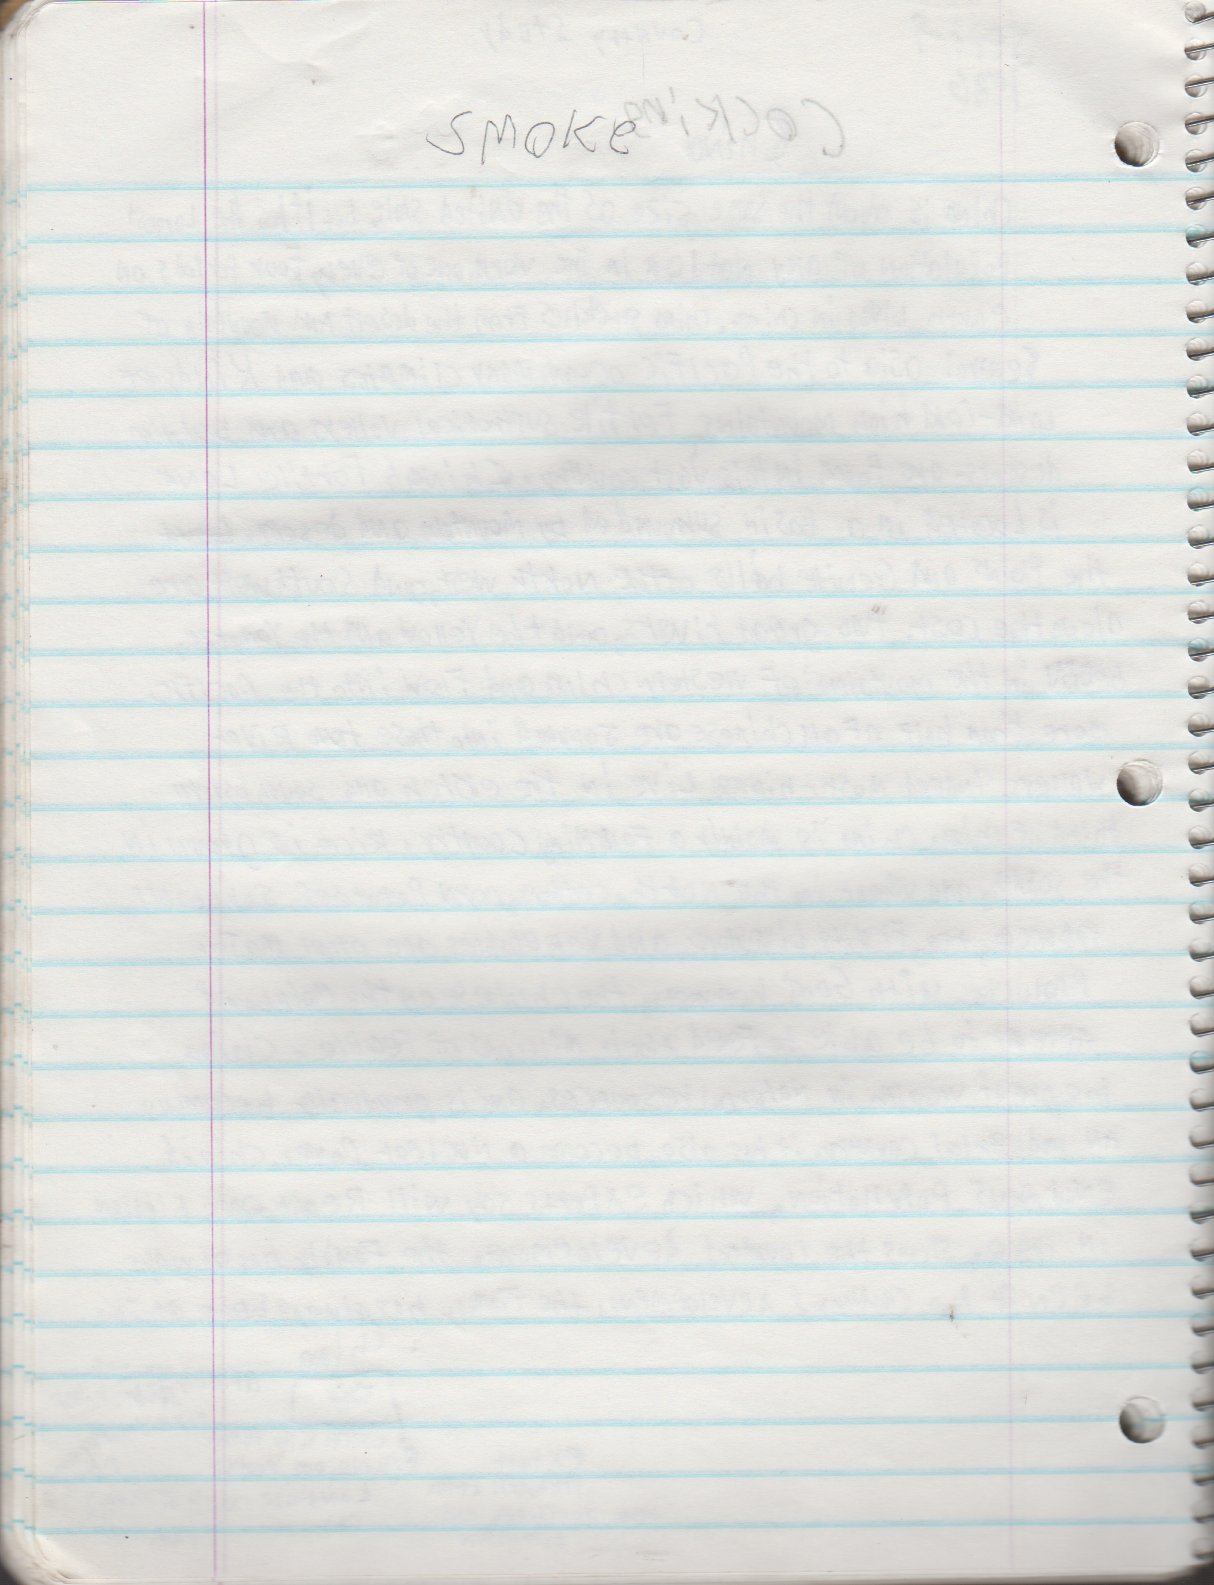 1996-08-18 - Saturday - 11 yr old Joey Arnold's School Book, dates through to 1998 apx, mostly 96, Writings, Drawings, Etc-070.png